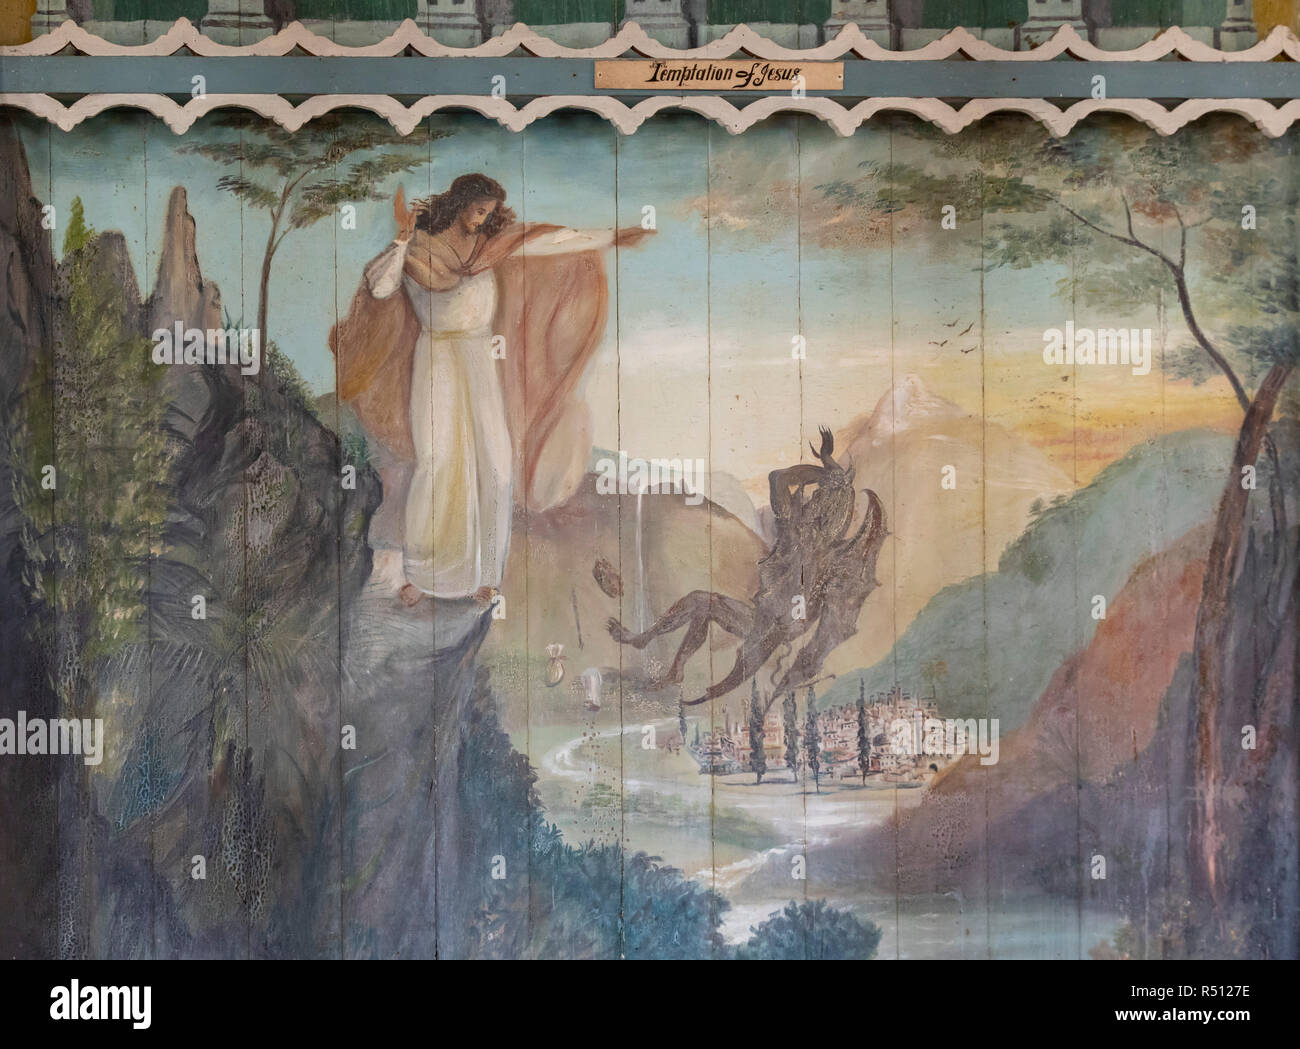 Honaunau, Hawaii - Temptation of Jesus, a painting on the wall of St. Benedict Roman Catholic Church, also known as The Painted Church. The church was - Stock Image